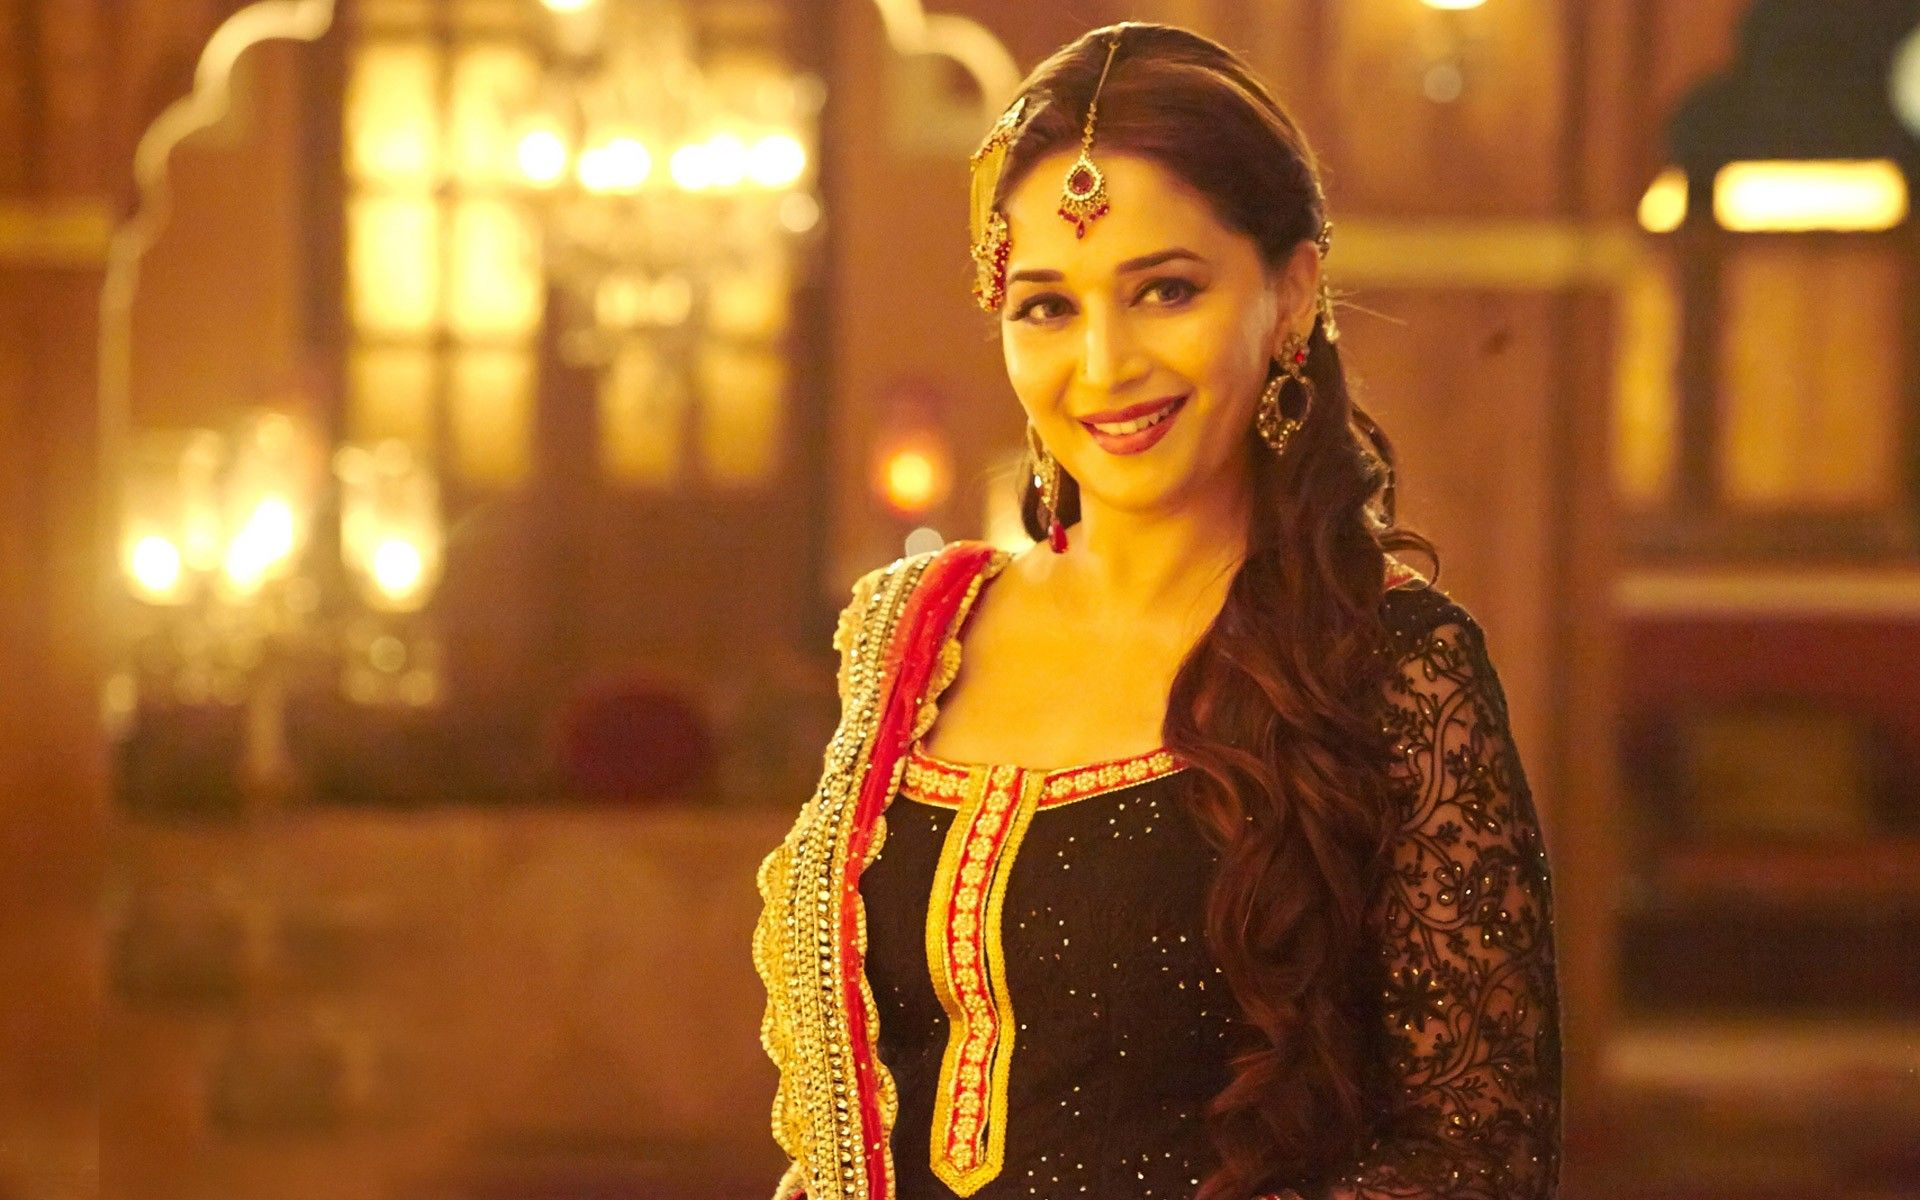 Wallpaper download madhuri dixit - Madhuri Dixit Finally Fulfills Her Wish Choreographs For A Tv Show